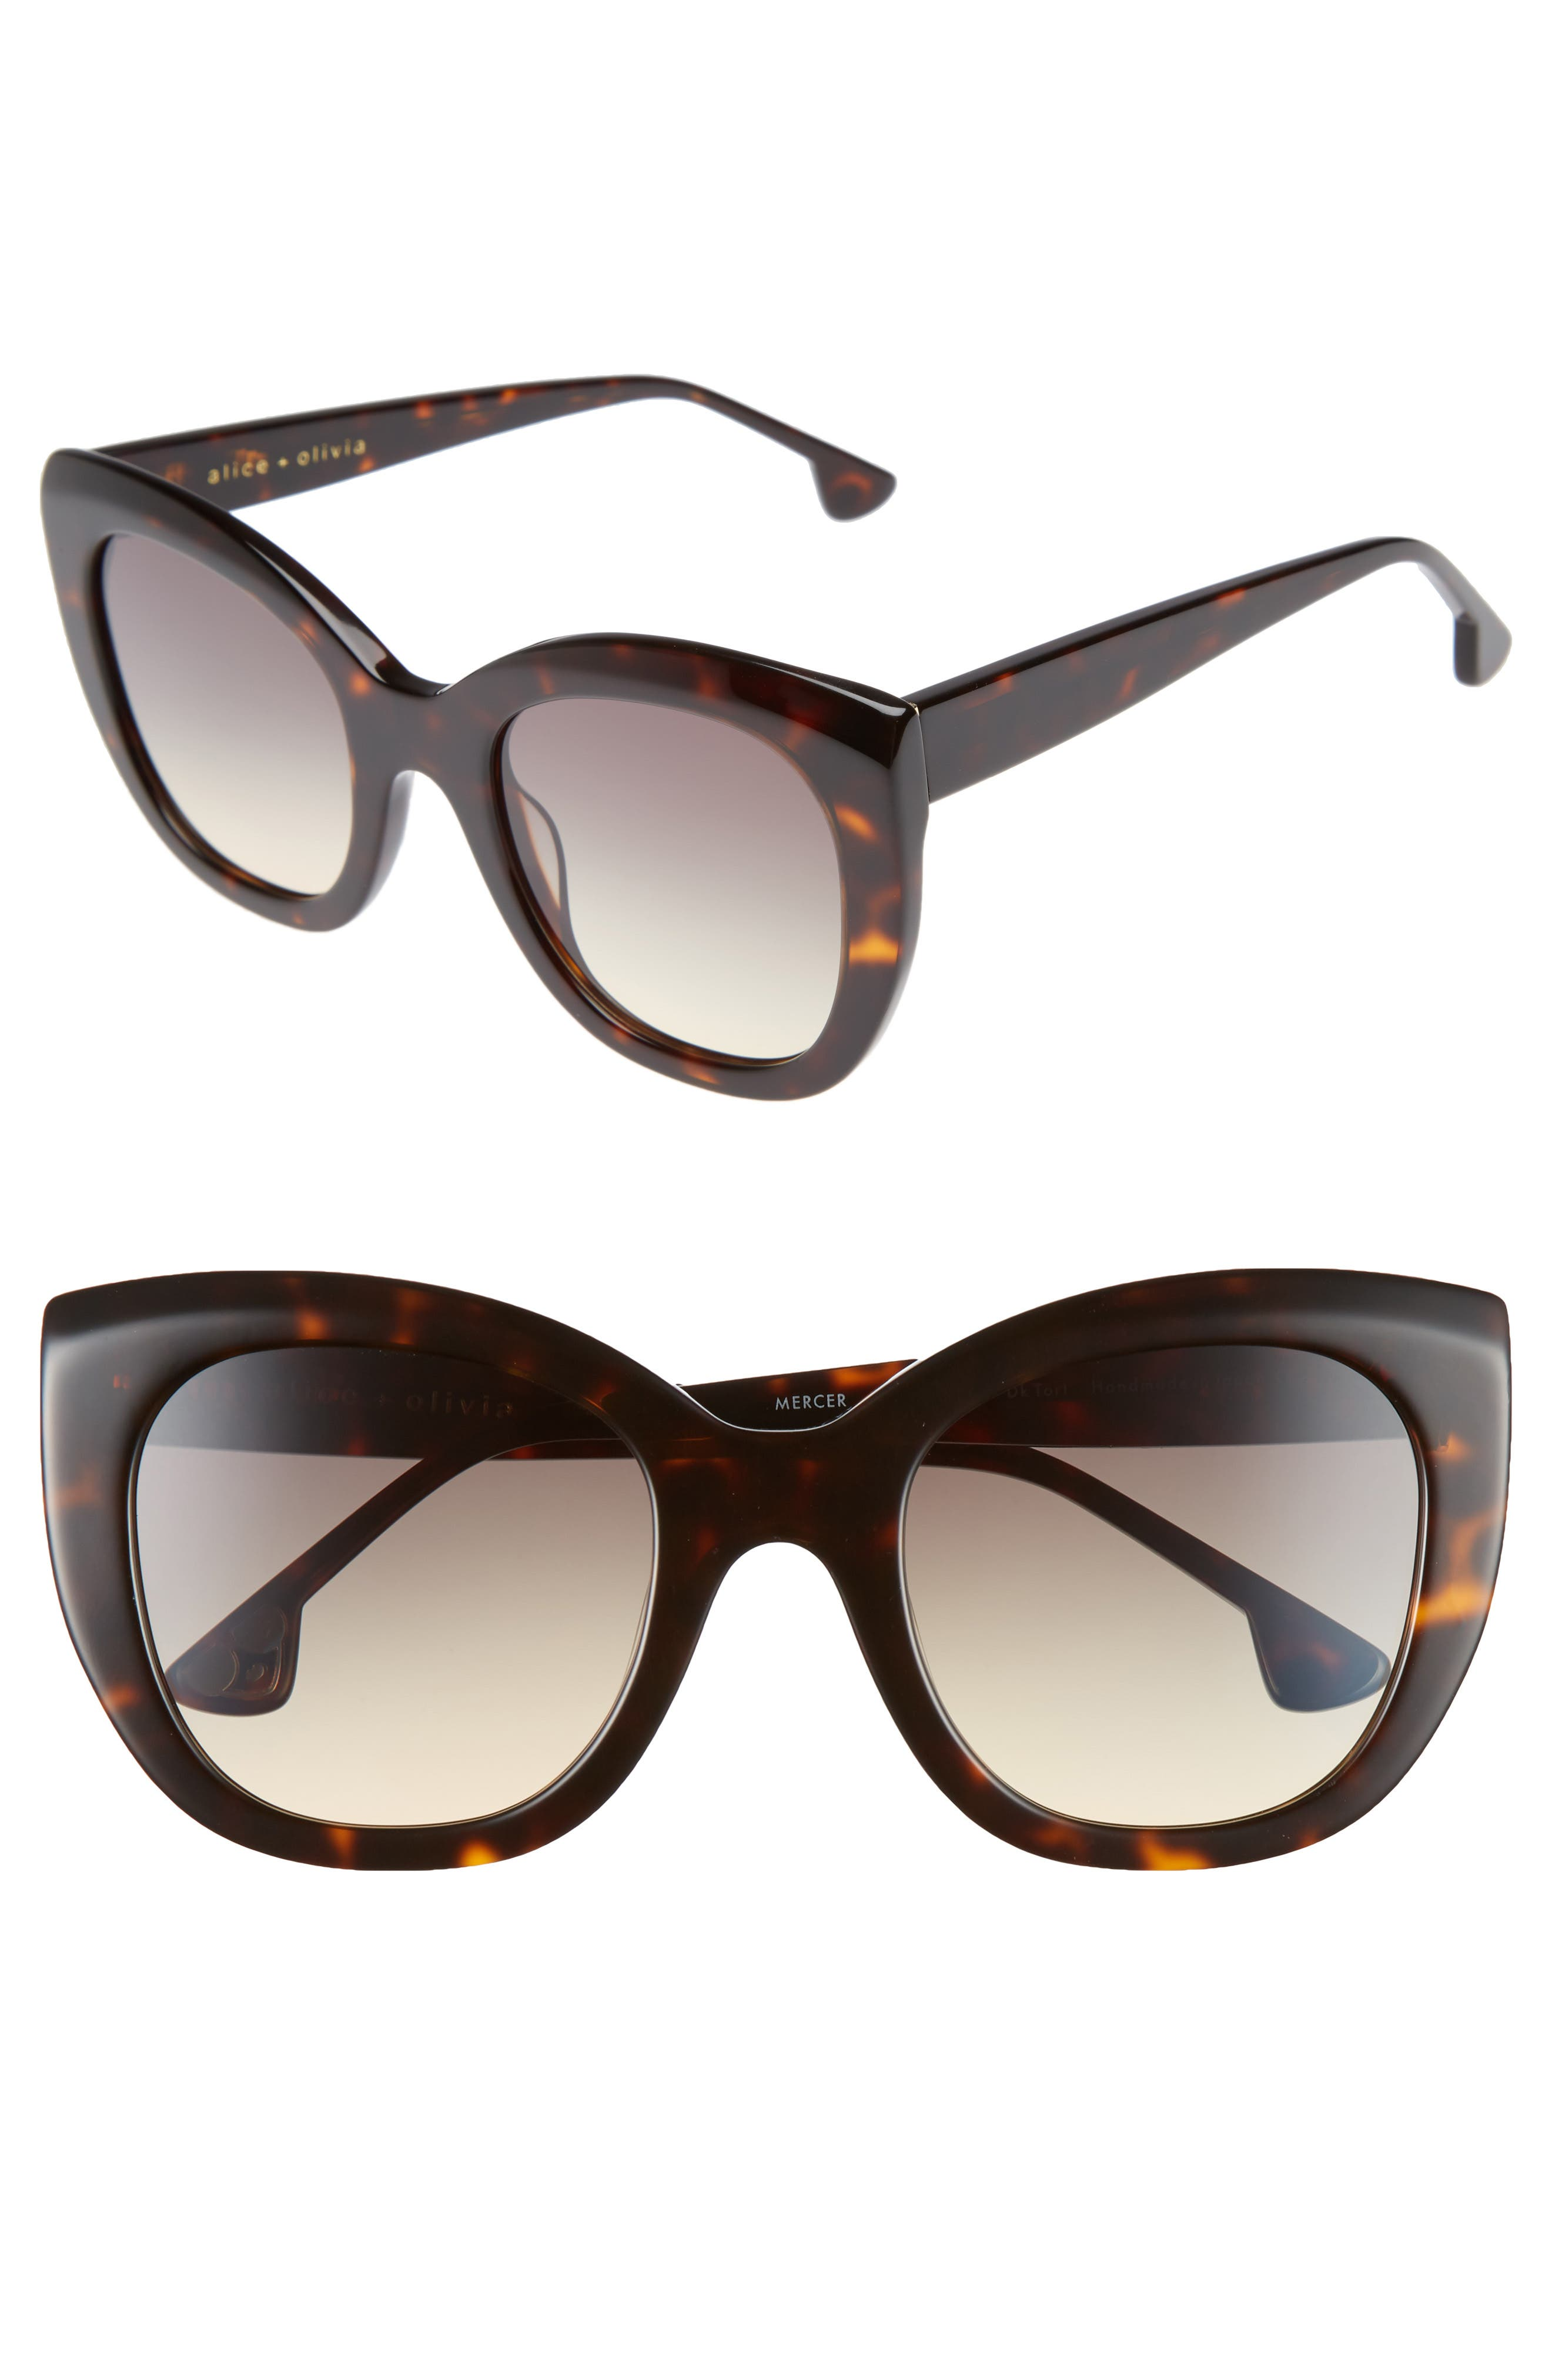 Main Image - Alice + Olivia Mercer 52mm Cat Eye Sunglasses